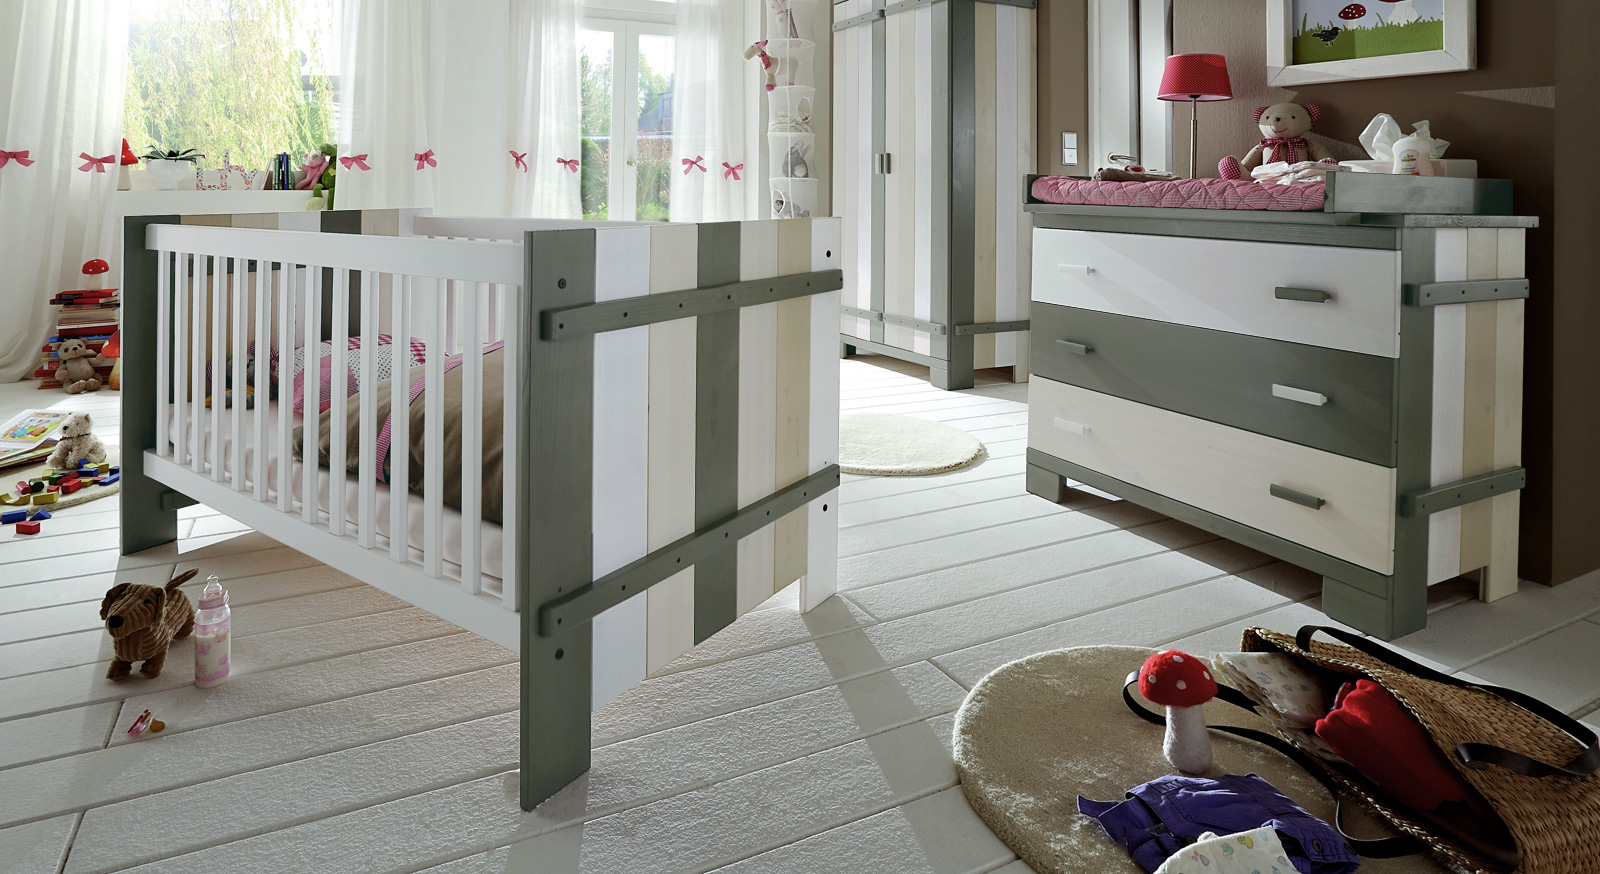 hochwertiges babyzimmer laubh tte aus kiefer massivholz. Black Bedroom Furniture Sets. Home Design Ideas